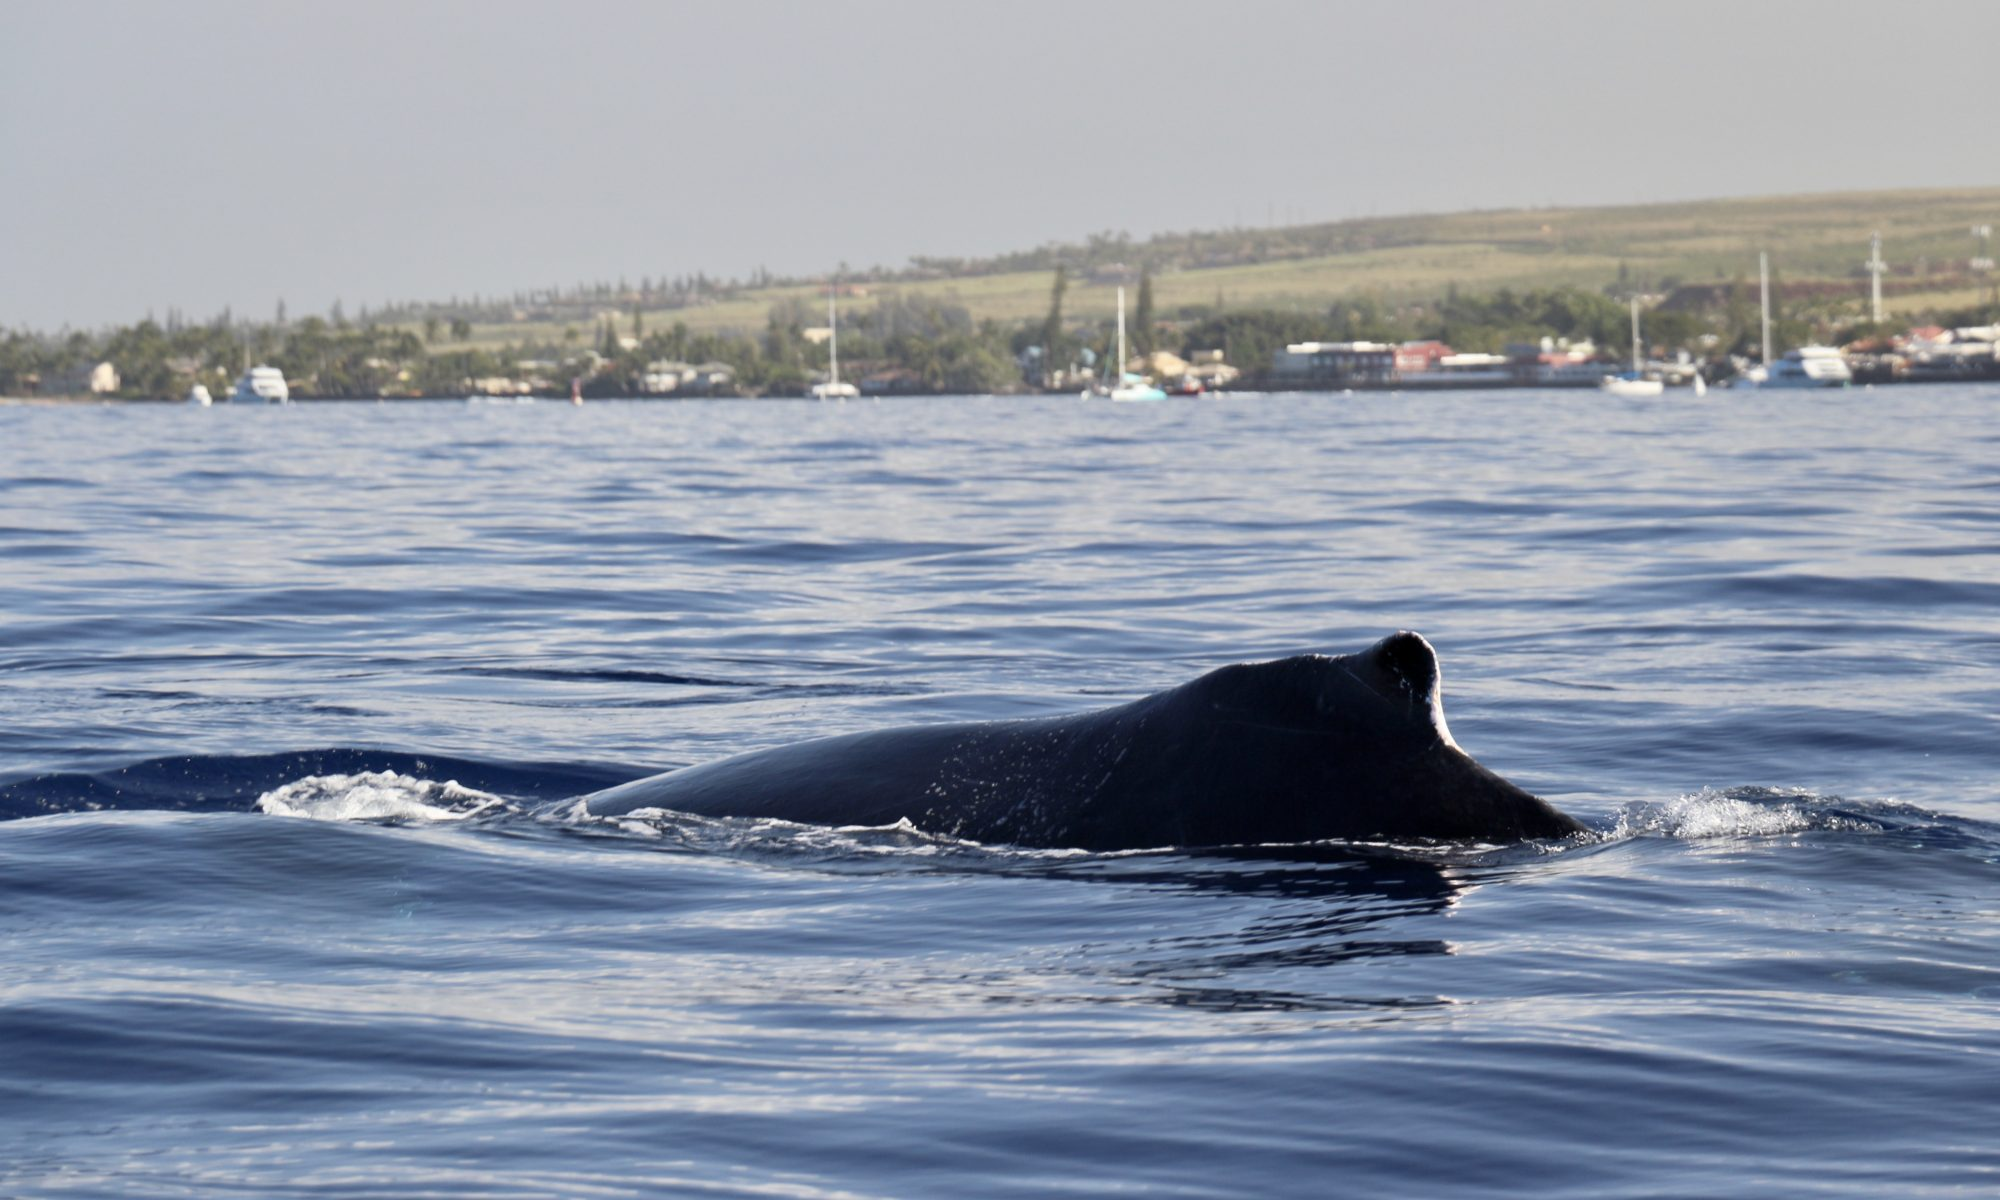 Photo of the hump on a humpback whale